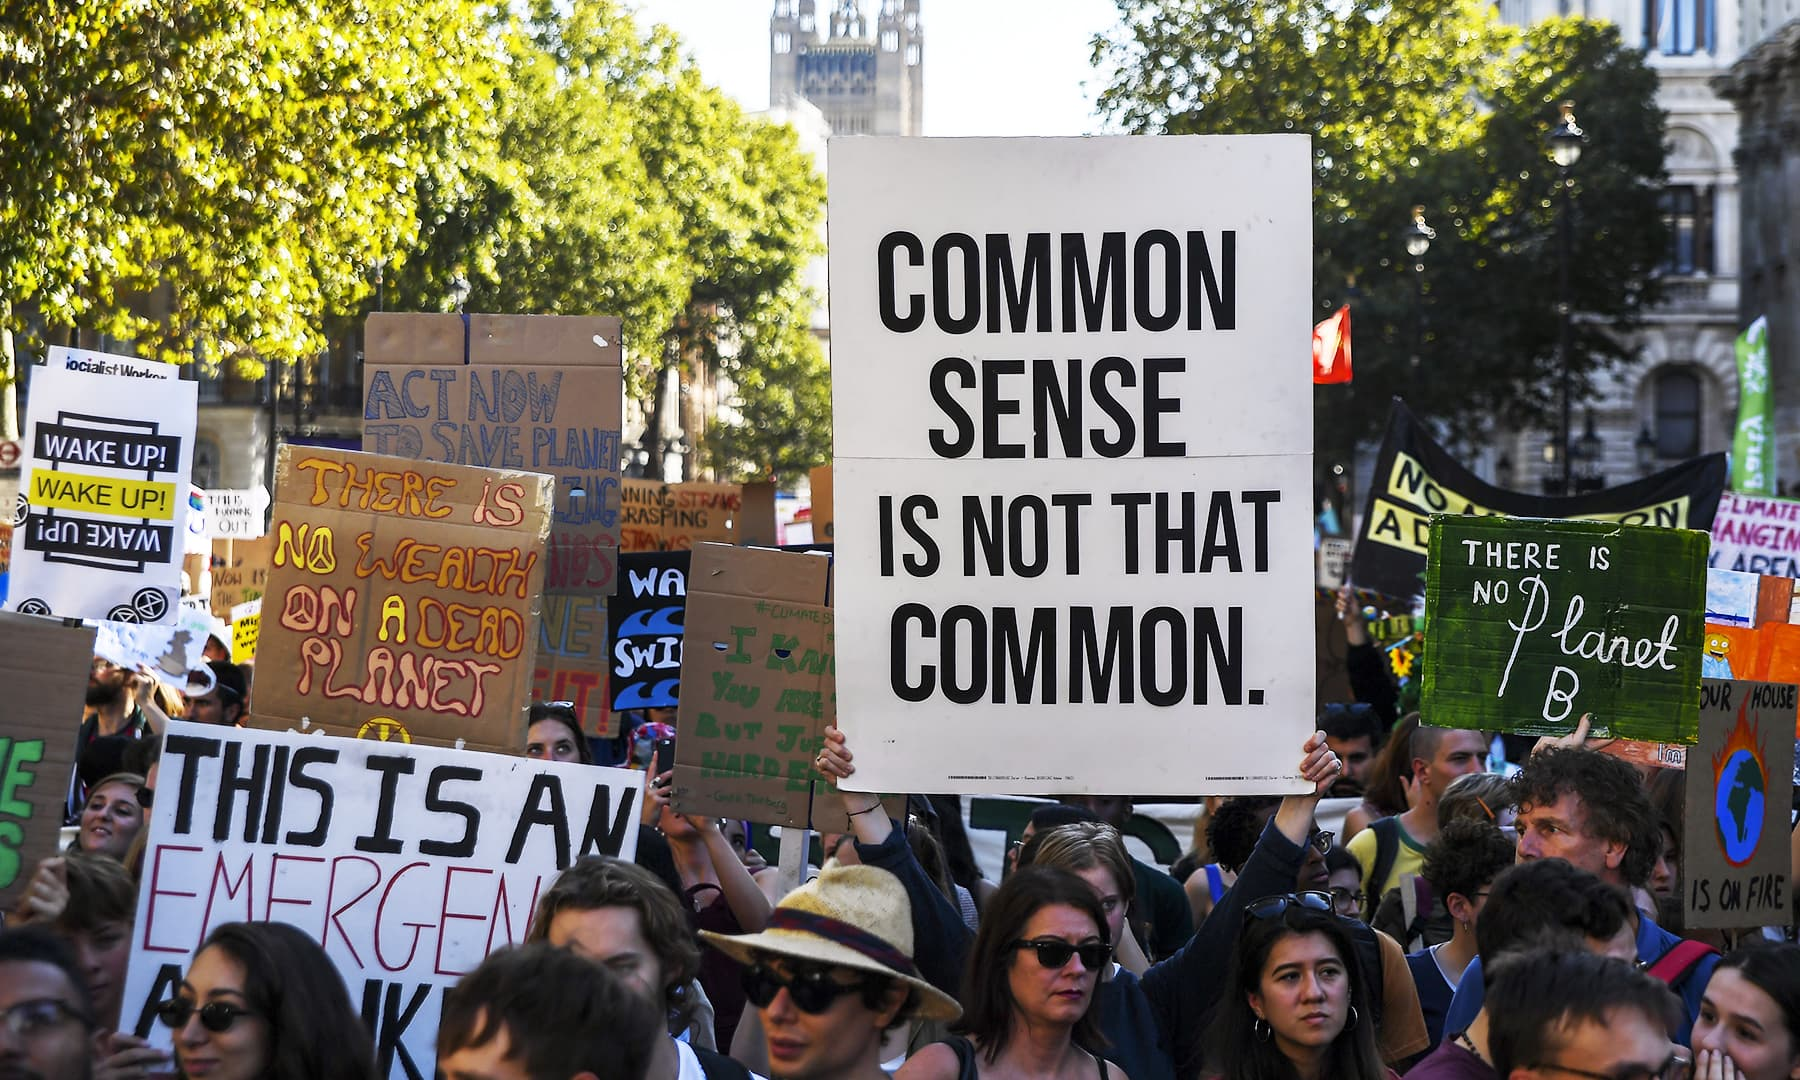 Climate protesters demonstrate in London, Friday, Sept. 20, 2019. — AP